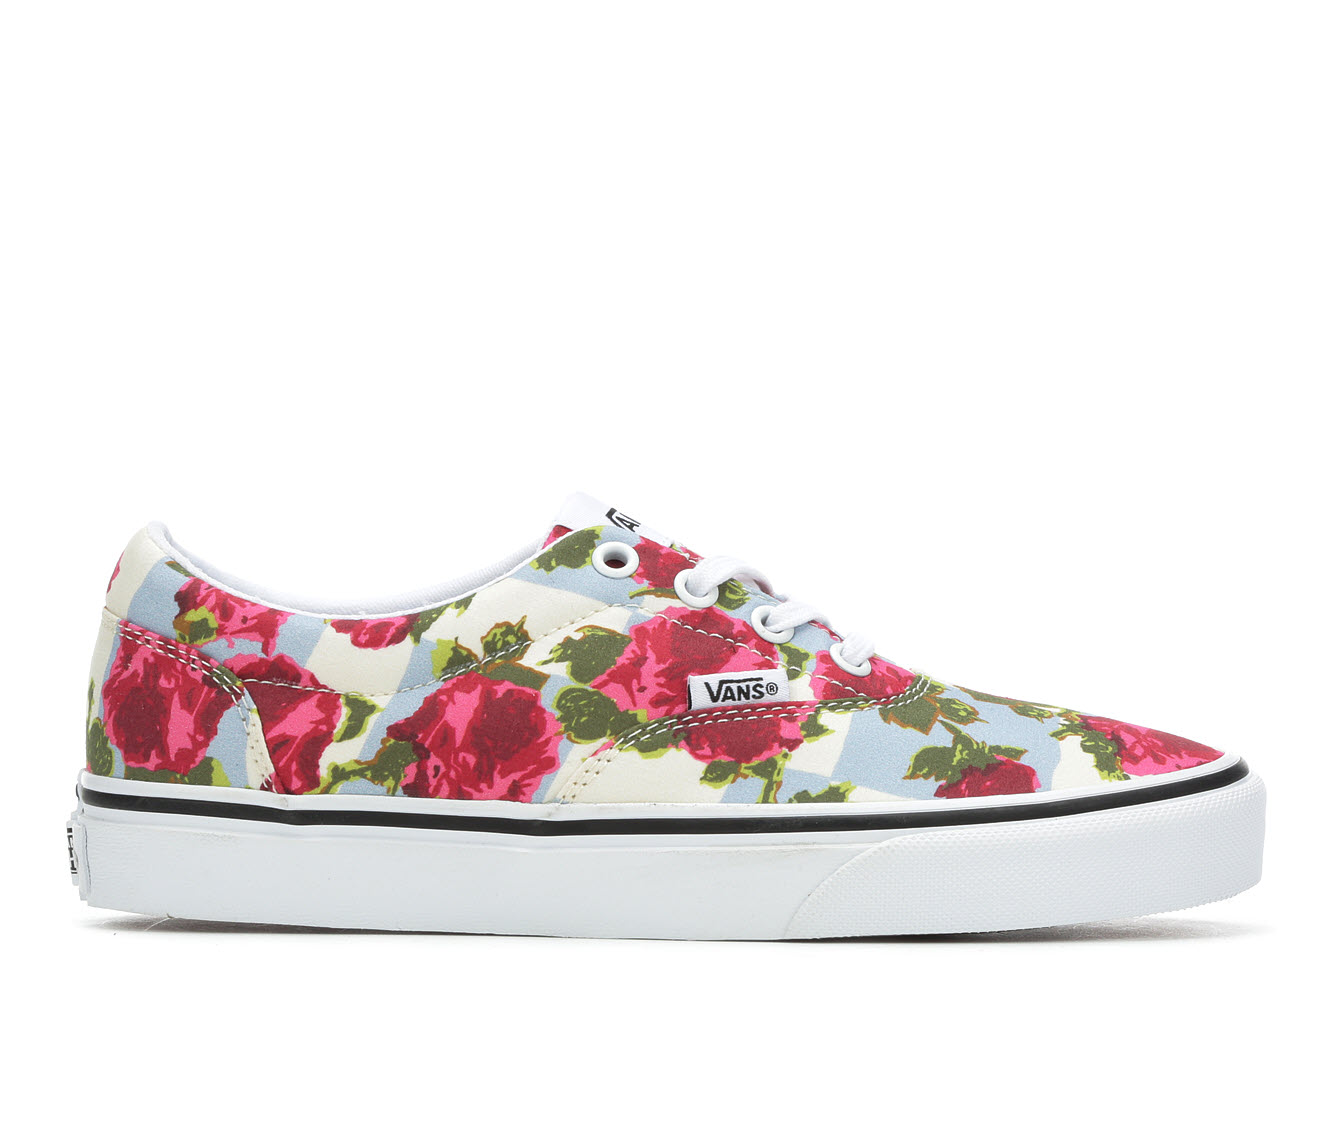 Vans Doheny Floral Women's Athletic Shoe (Blue)